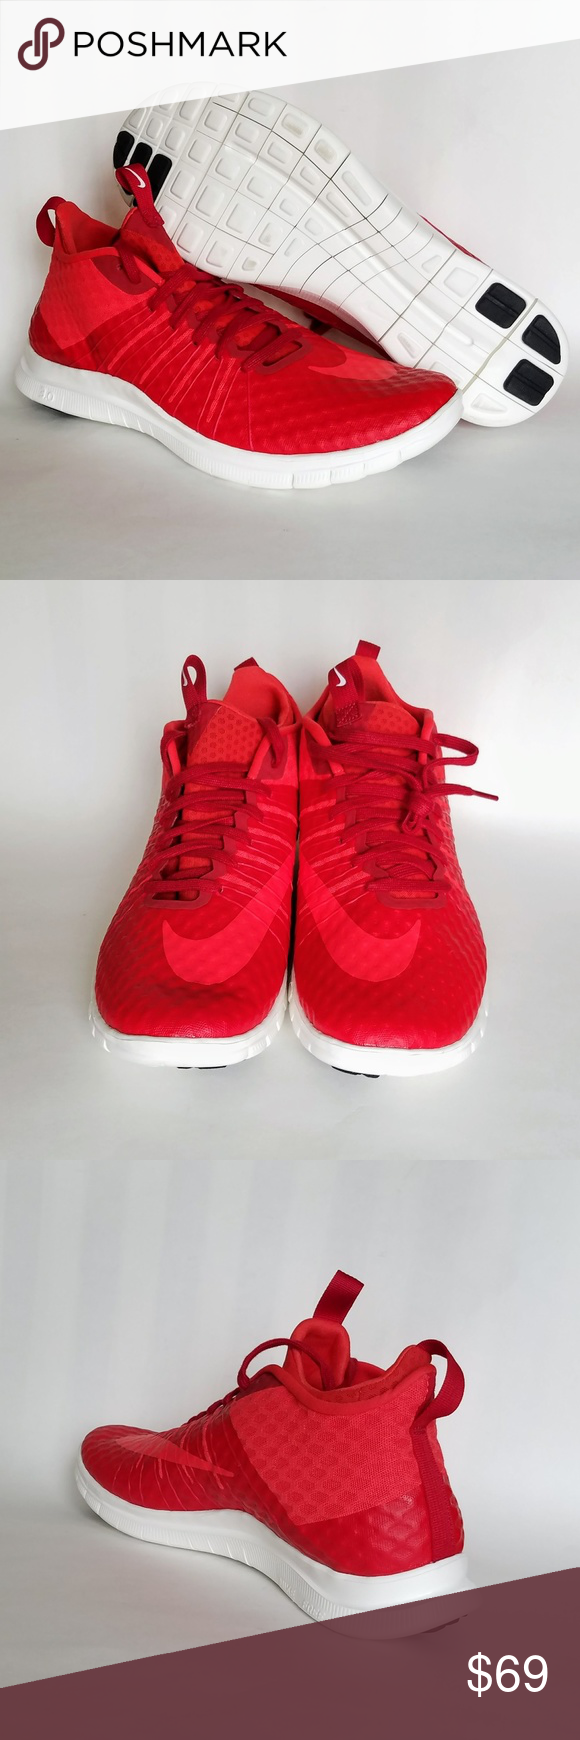 new product cd7b7 8cf65 Nike Free Hypervenom 2 FS 805890 600 Sz 11.5 Condition  New without box  Condition Rating